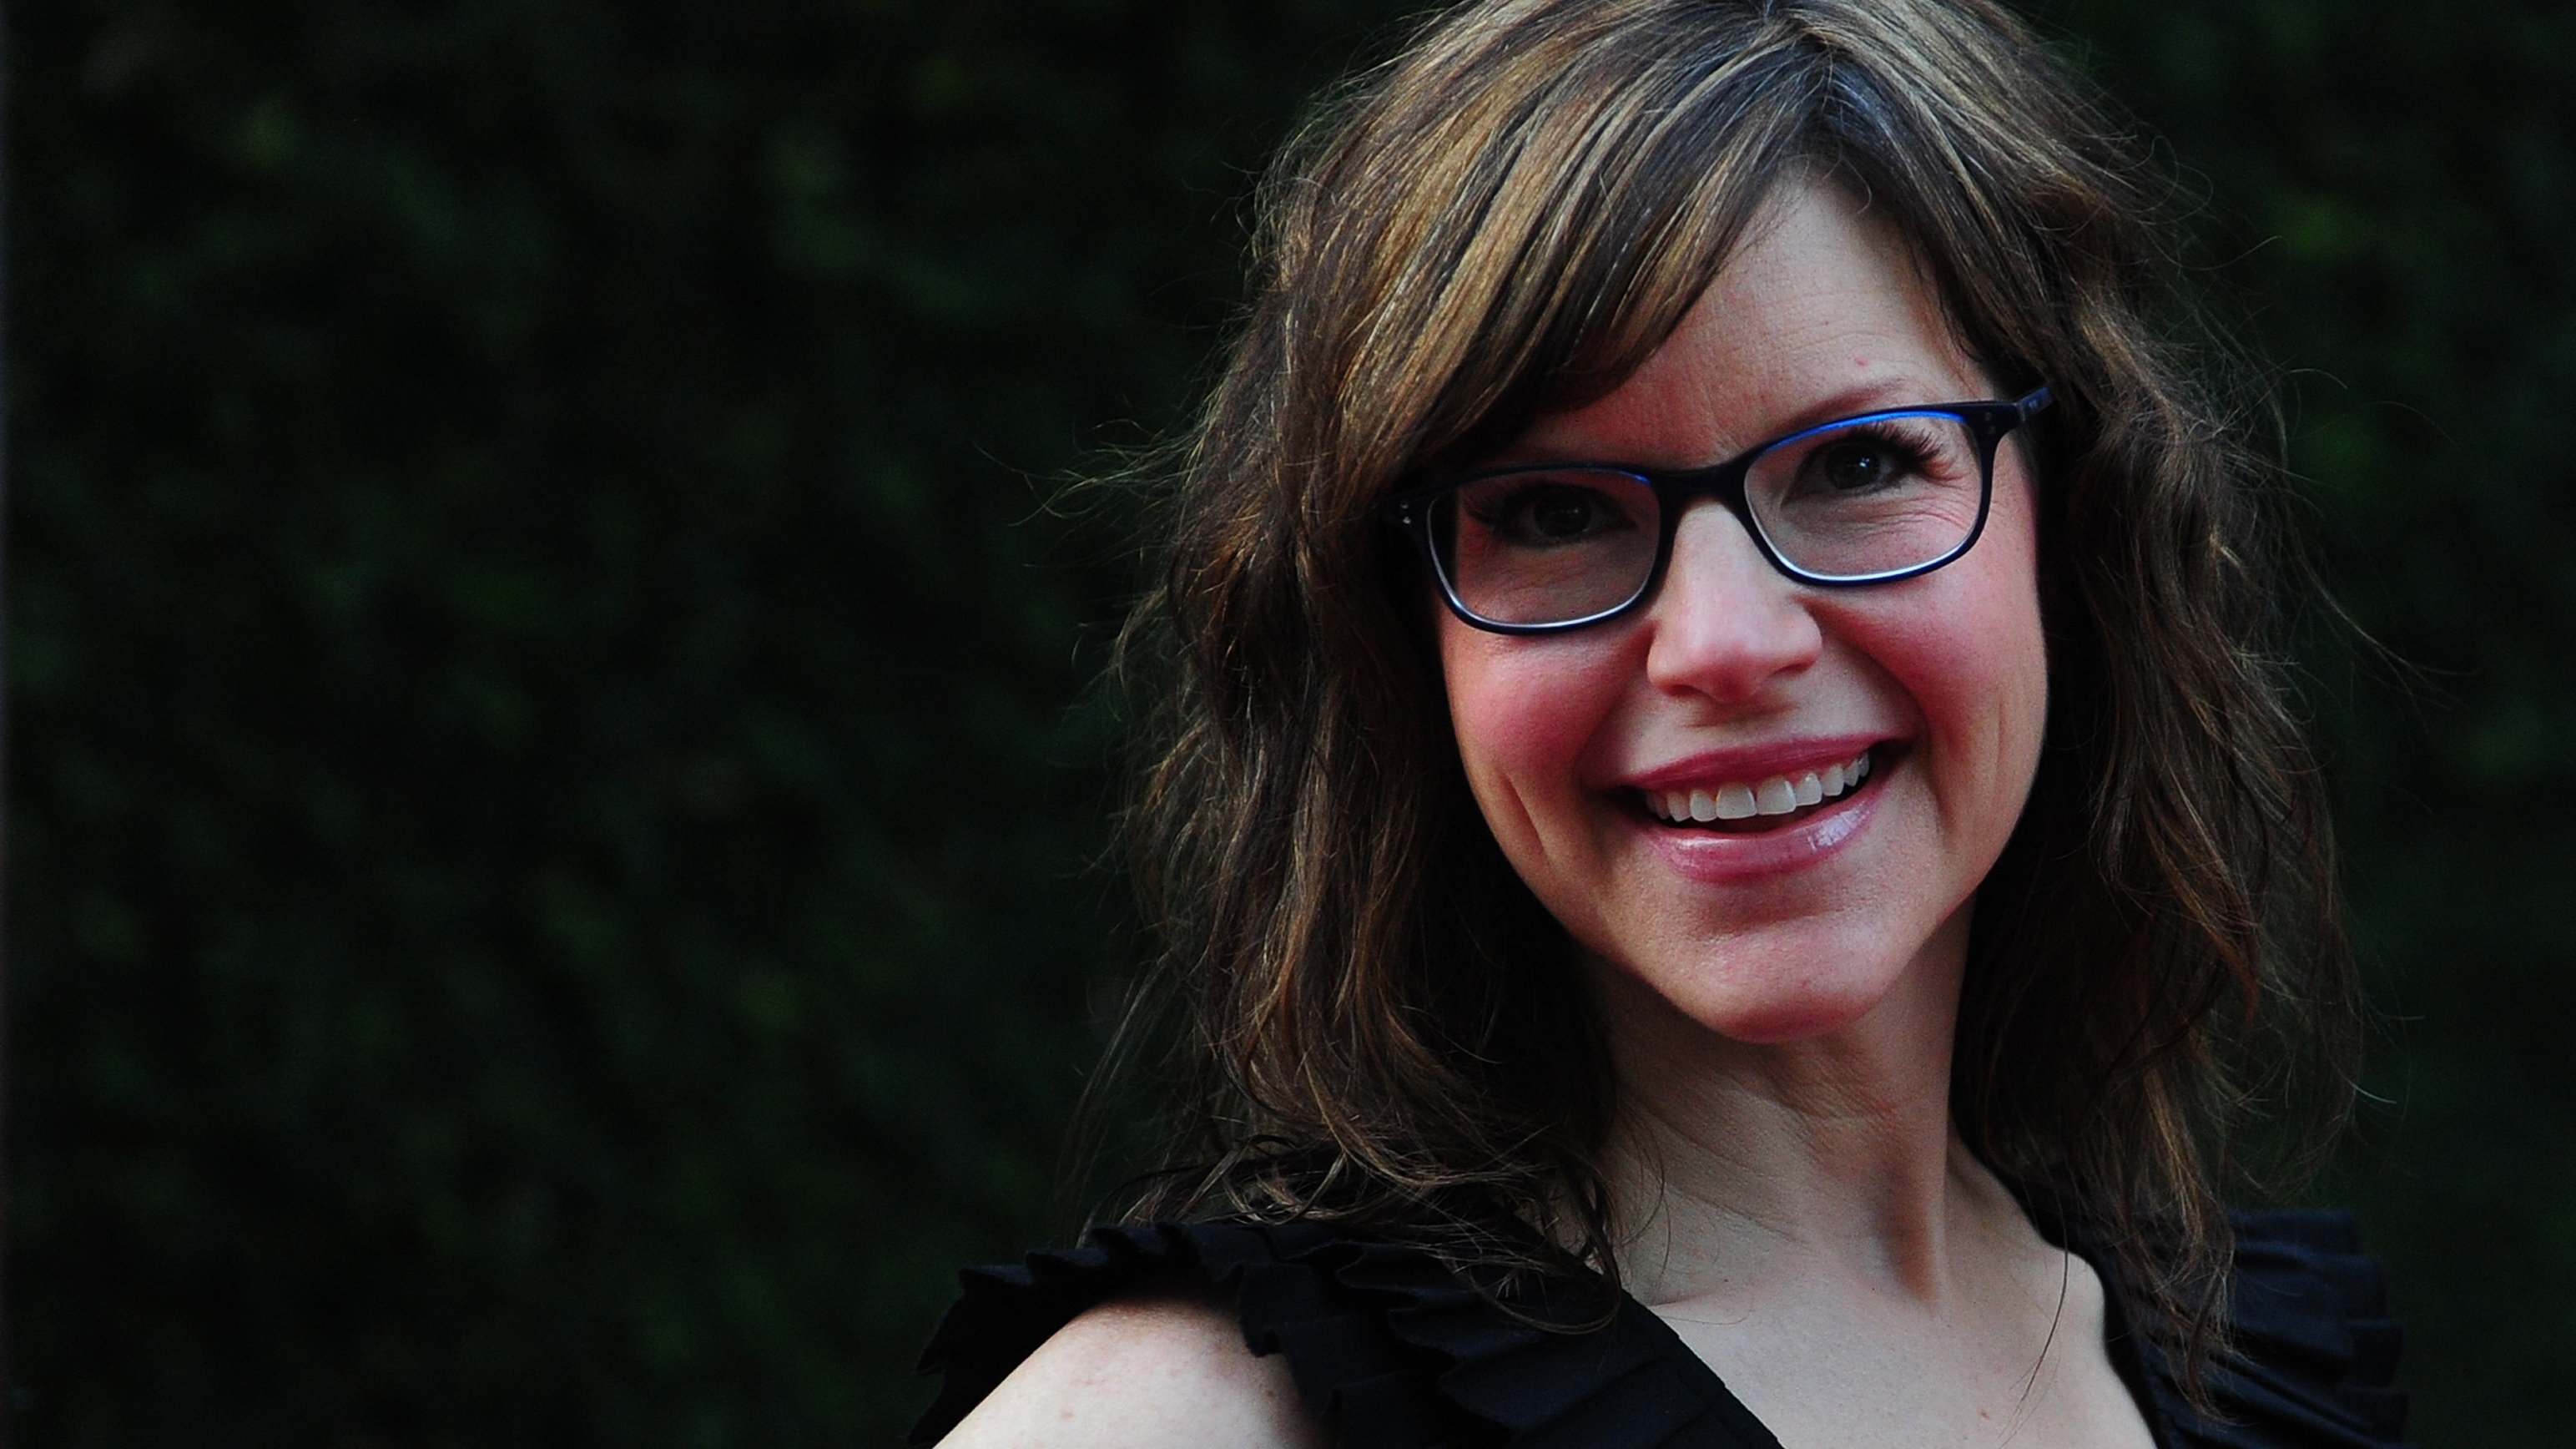 Lisa Loeb poses for the cameras on arrival for a Special Screening of DreamWork's Pictures' Fright Night on Aug. 17, 2011, in Hollywood, Calif.